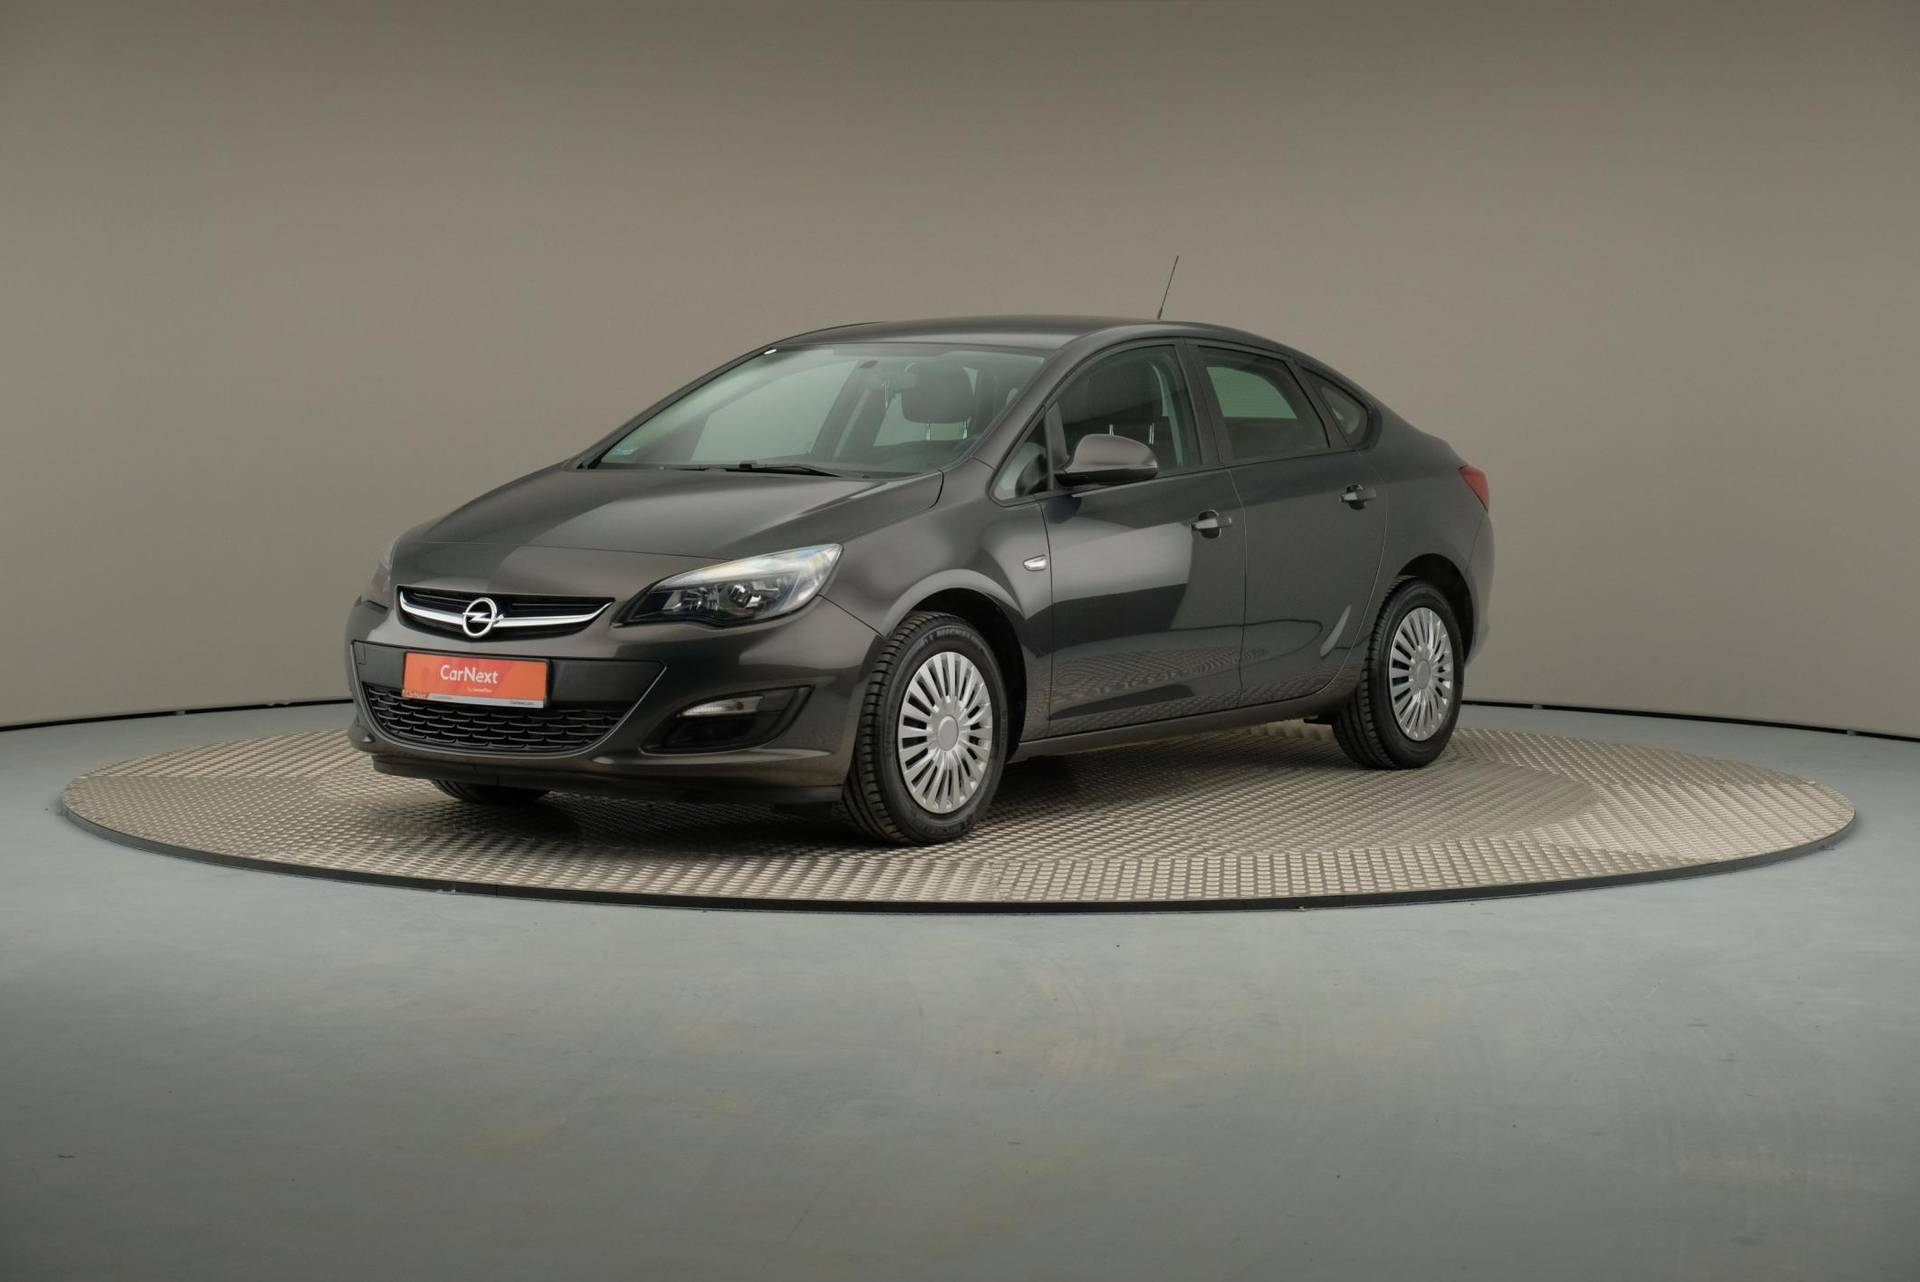 Opel Astra Astra 1.6 Twinport 115km, 360-image35